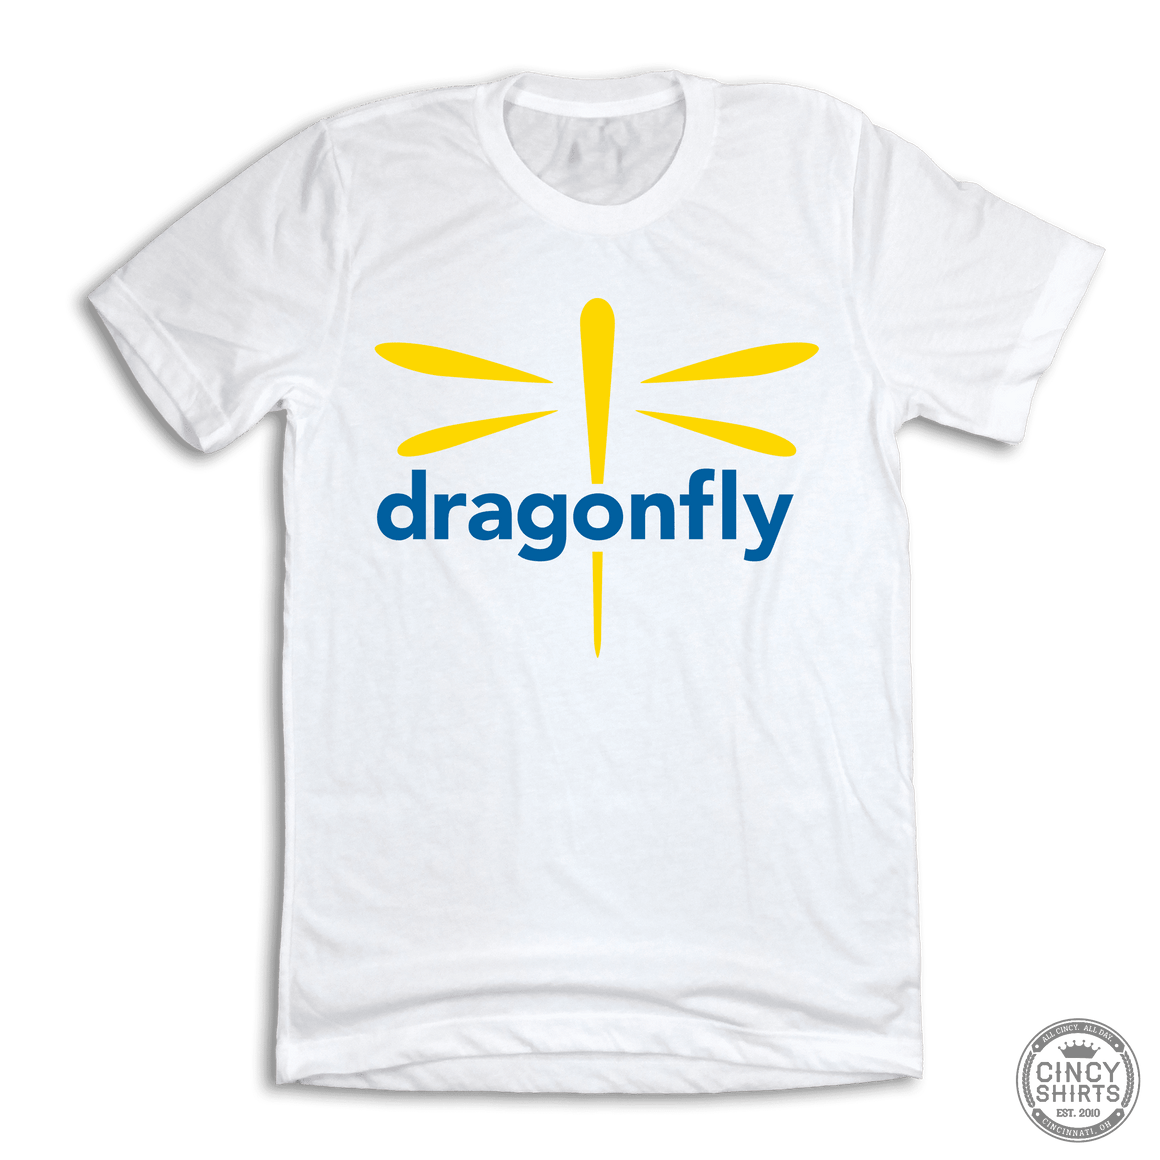 Dragonfly Foundation Logo - Cincy Shirts